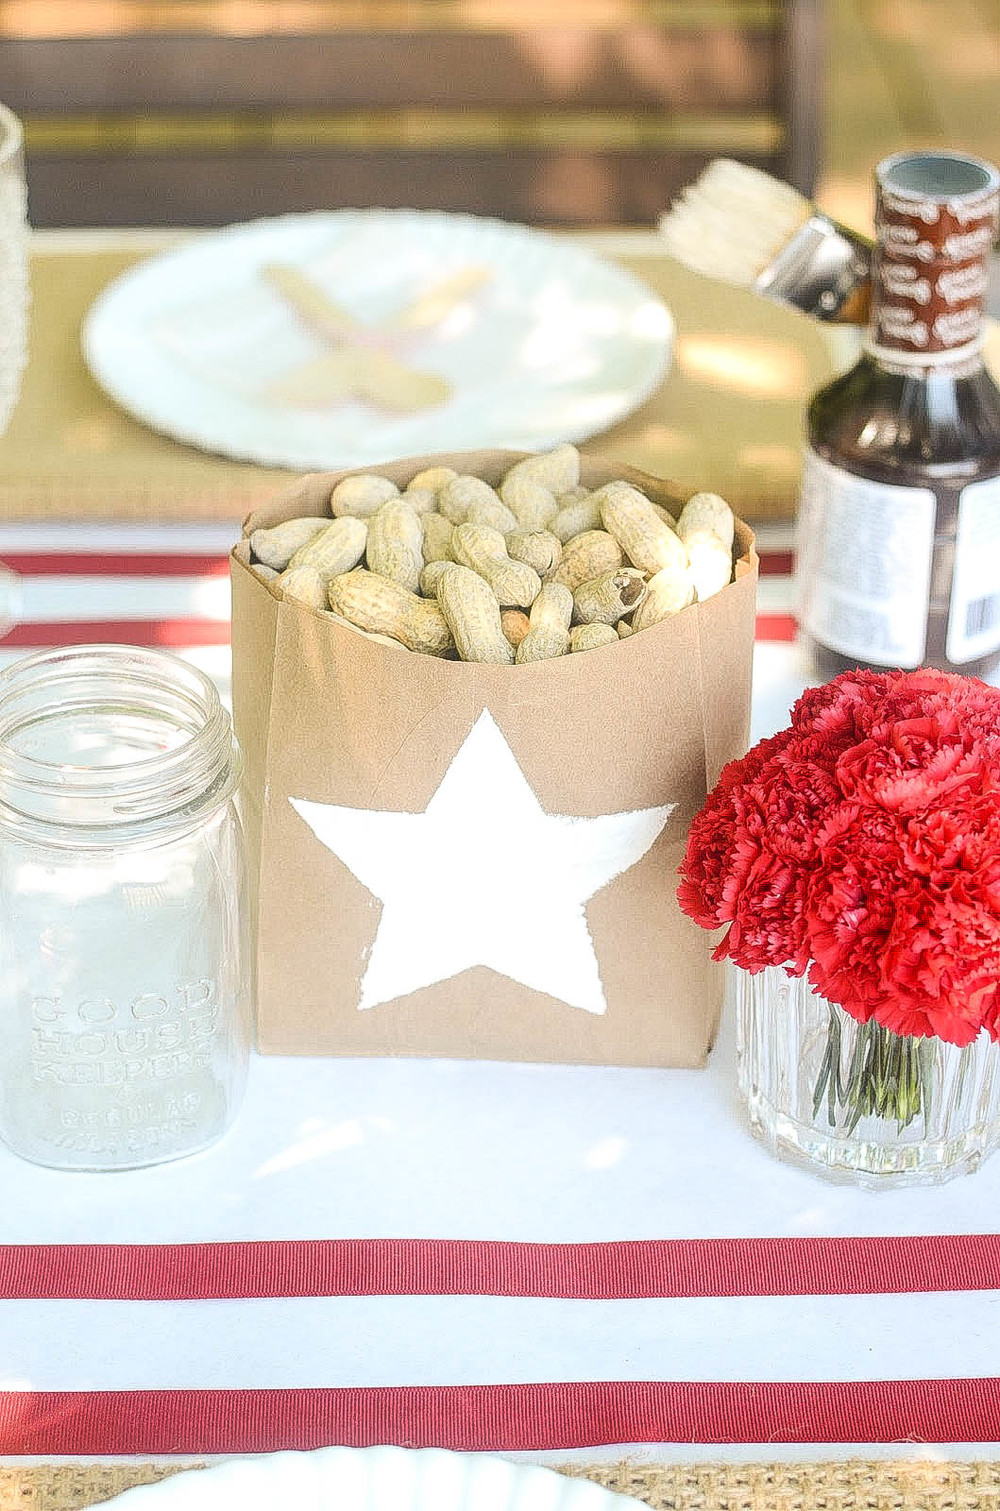 Brown paper lunch bags and white plaint is all that is needed to make these fun practical centerpieces!